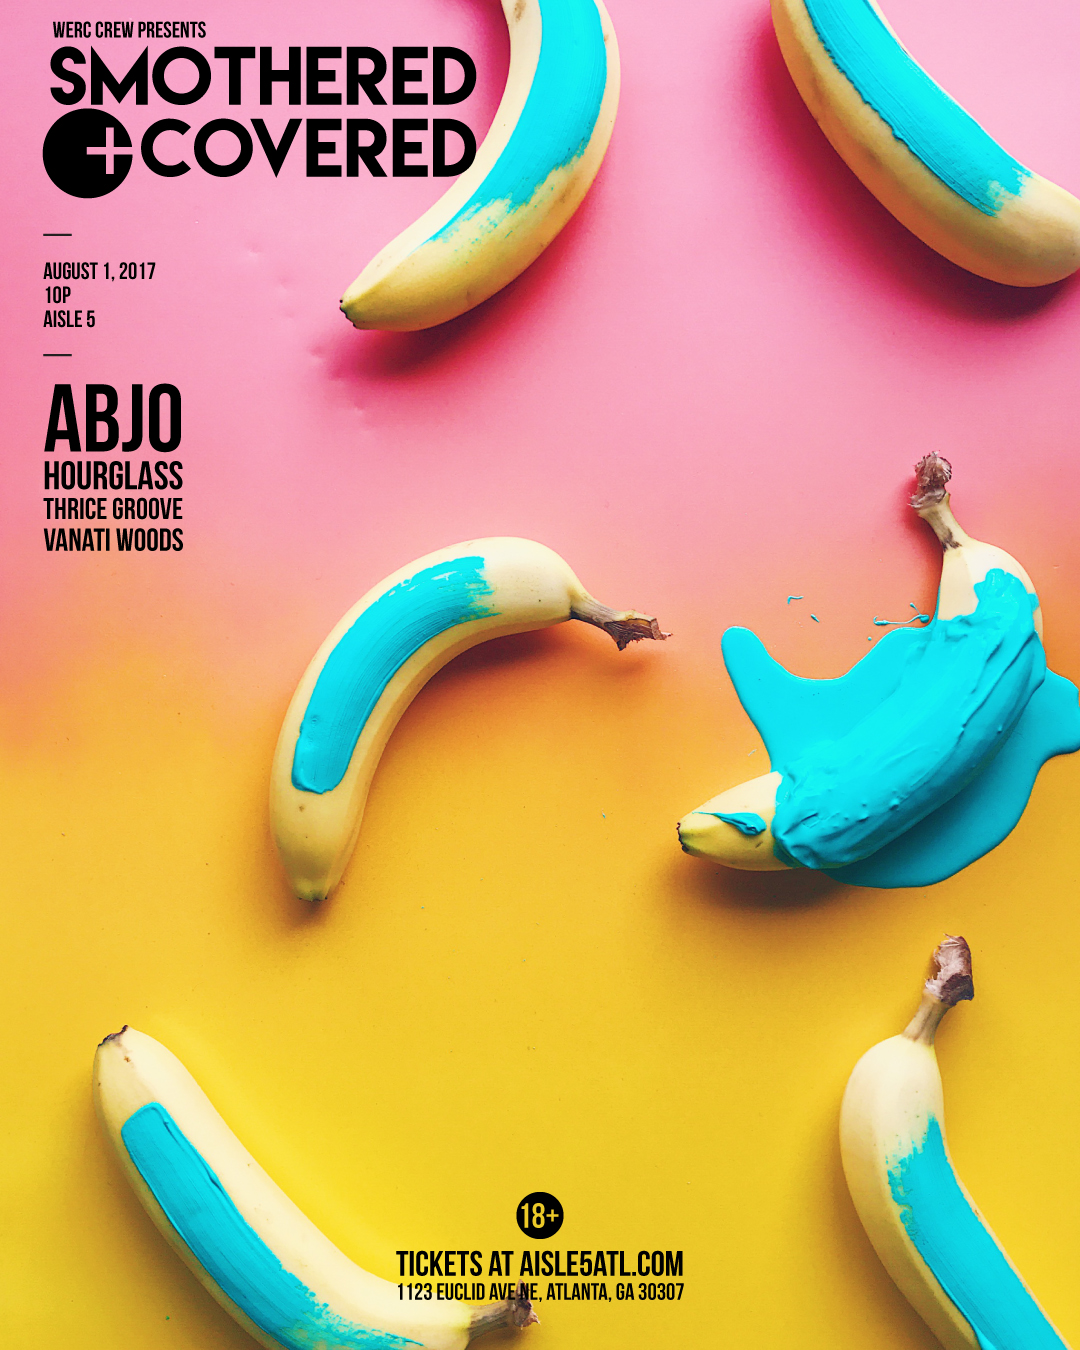 smothered&covered_august2017_abjo.jpg